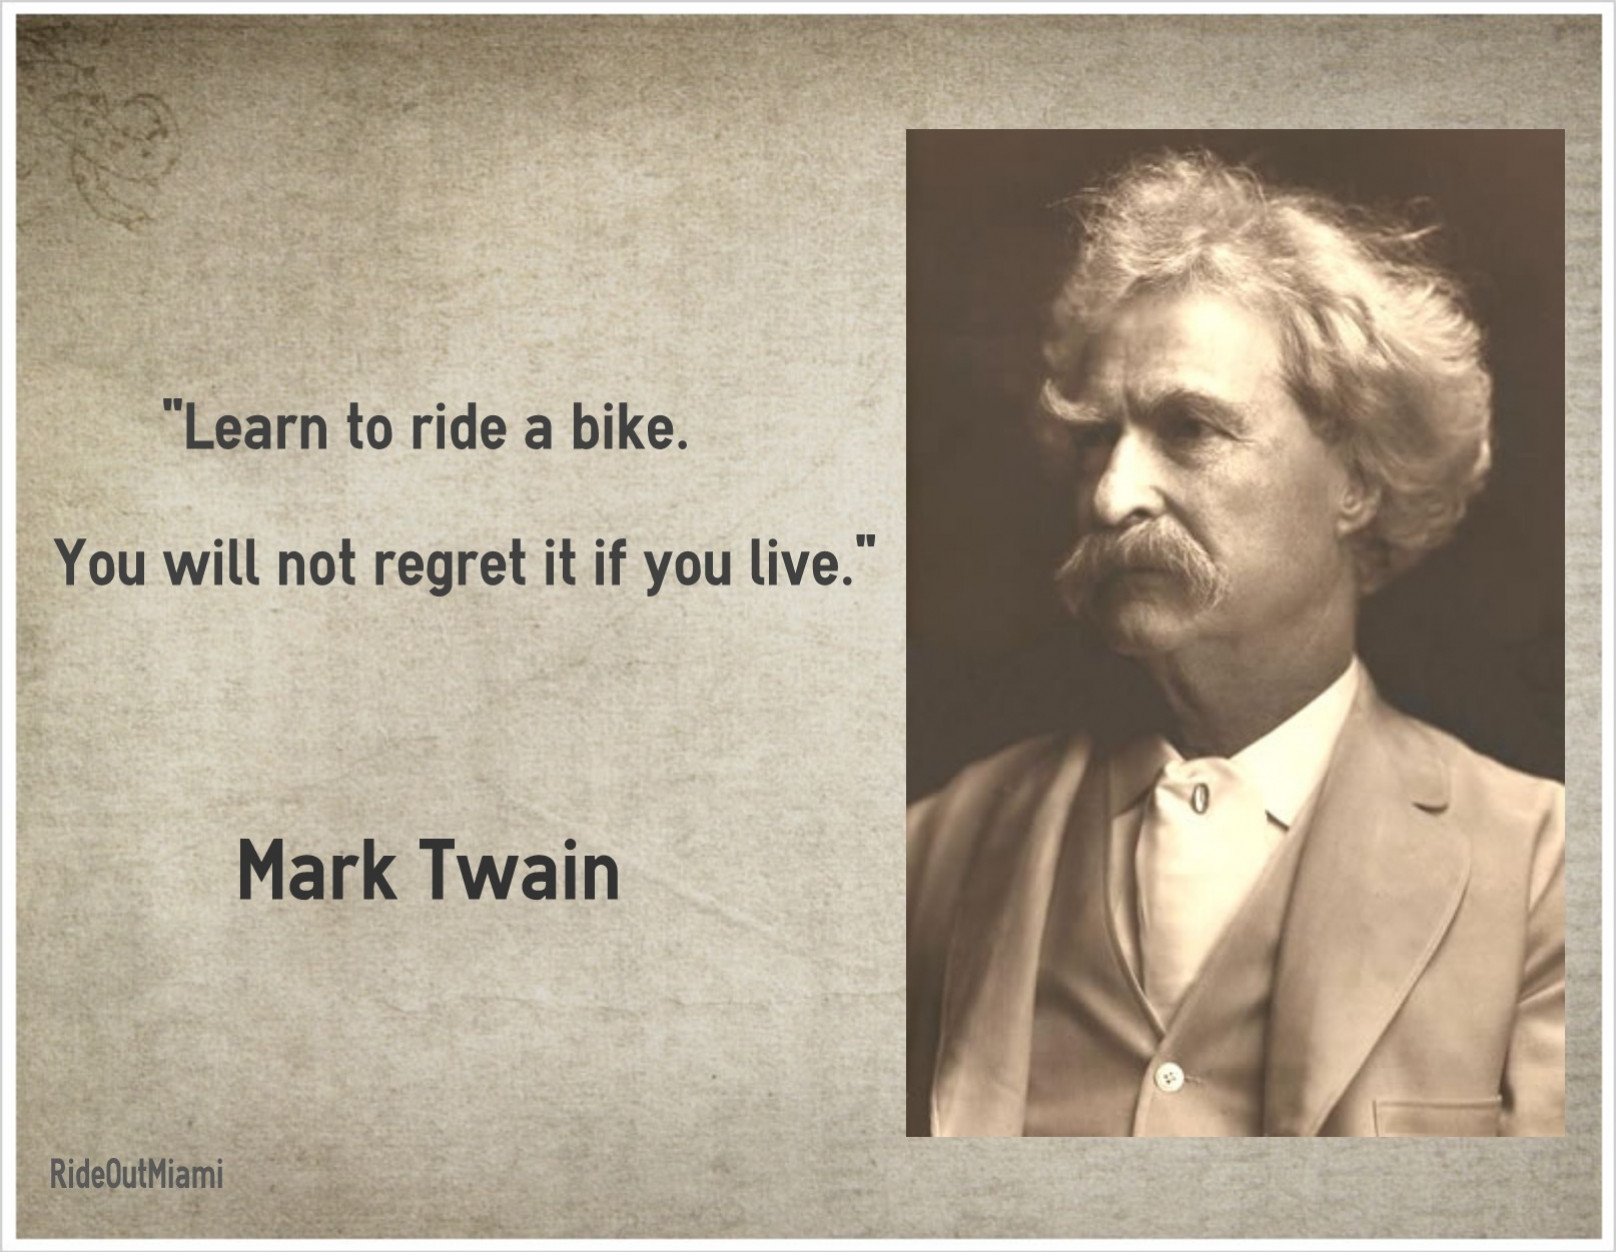 Best ideas about Mark Twain Birthday Quotes . Save or Pin Ride Out Miami Now.